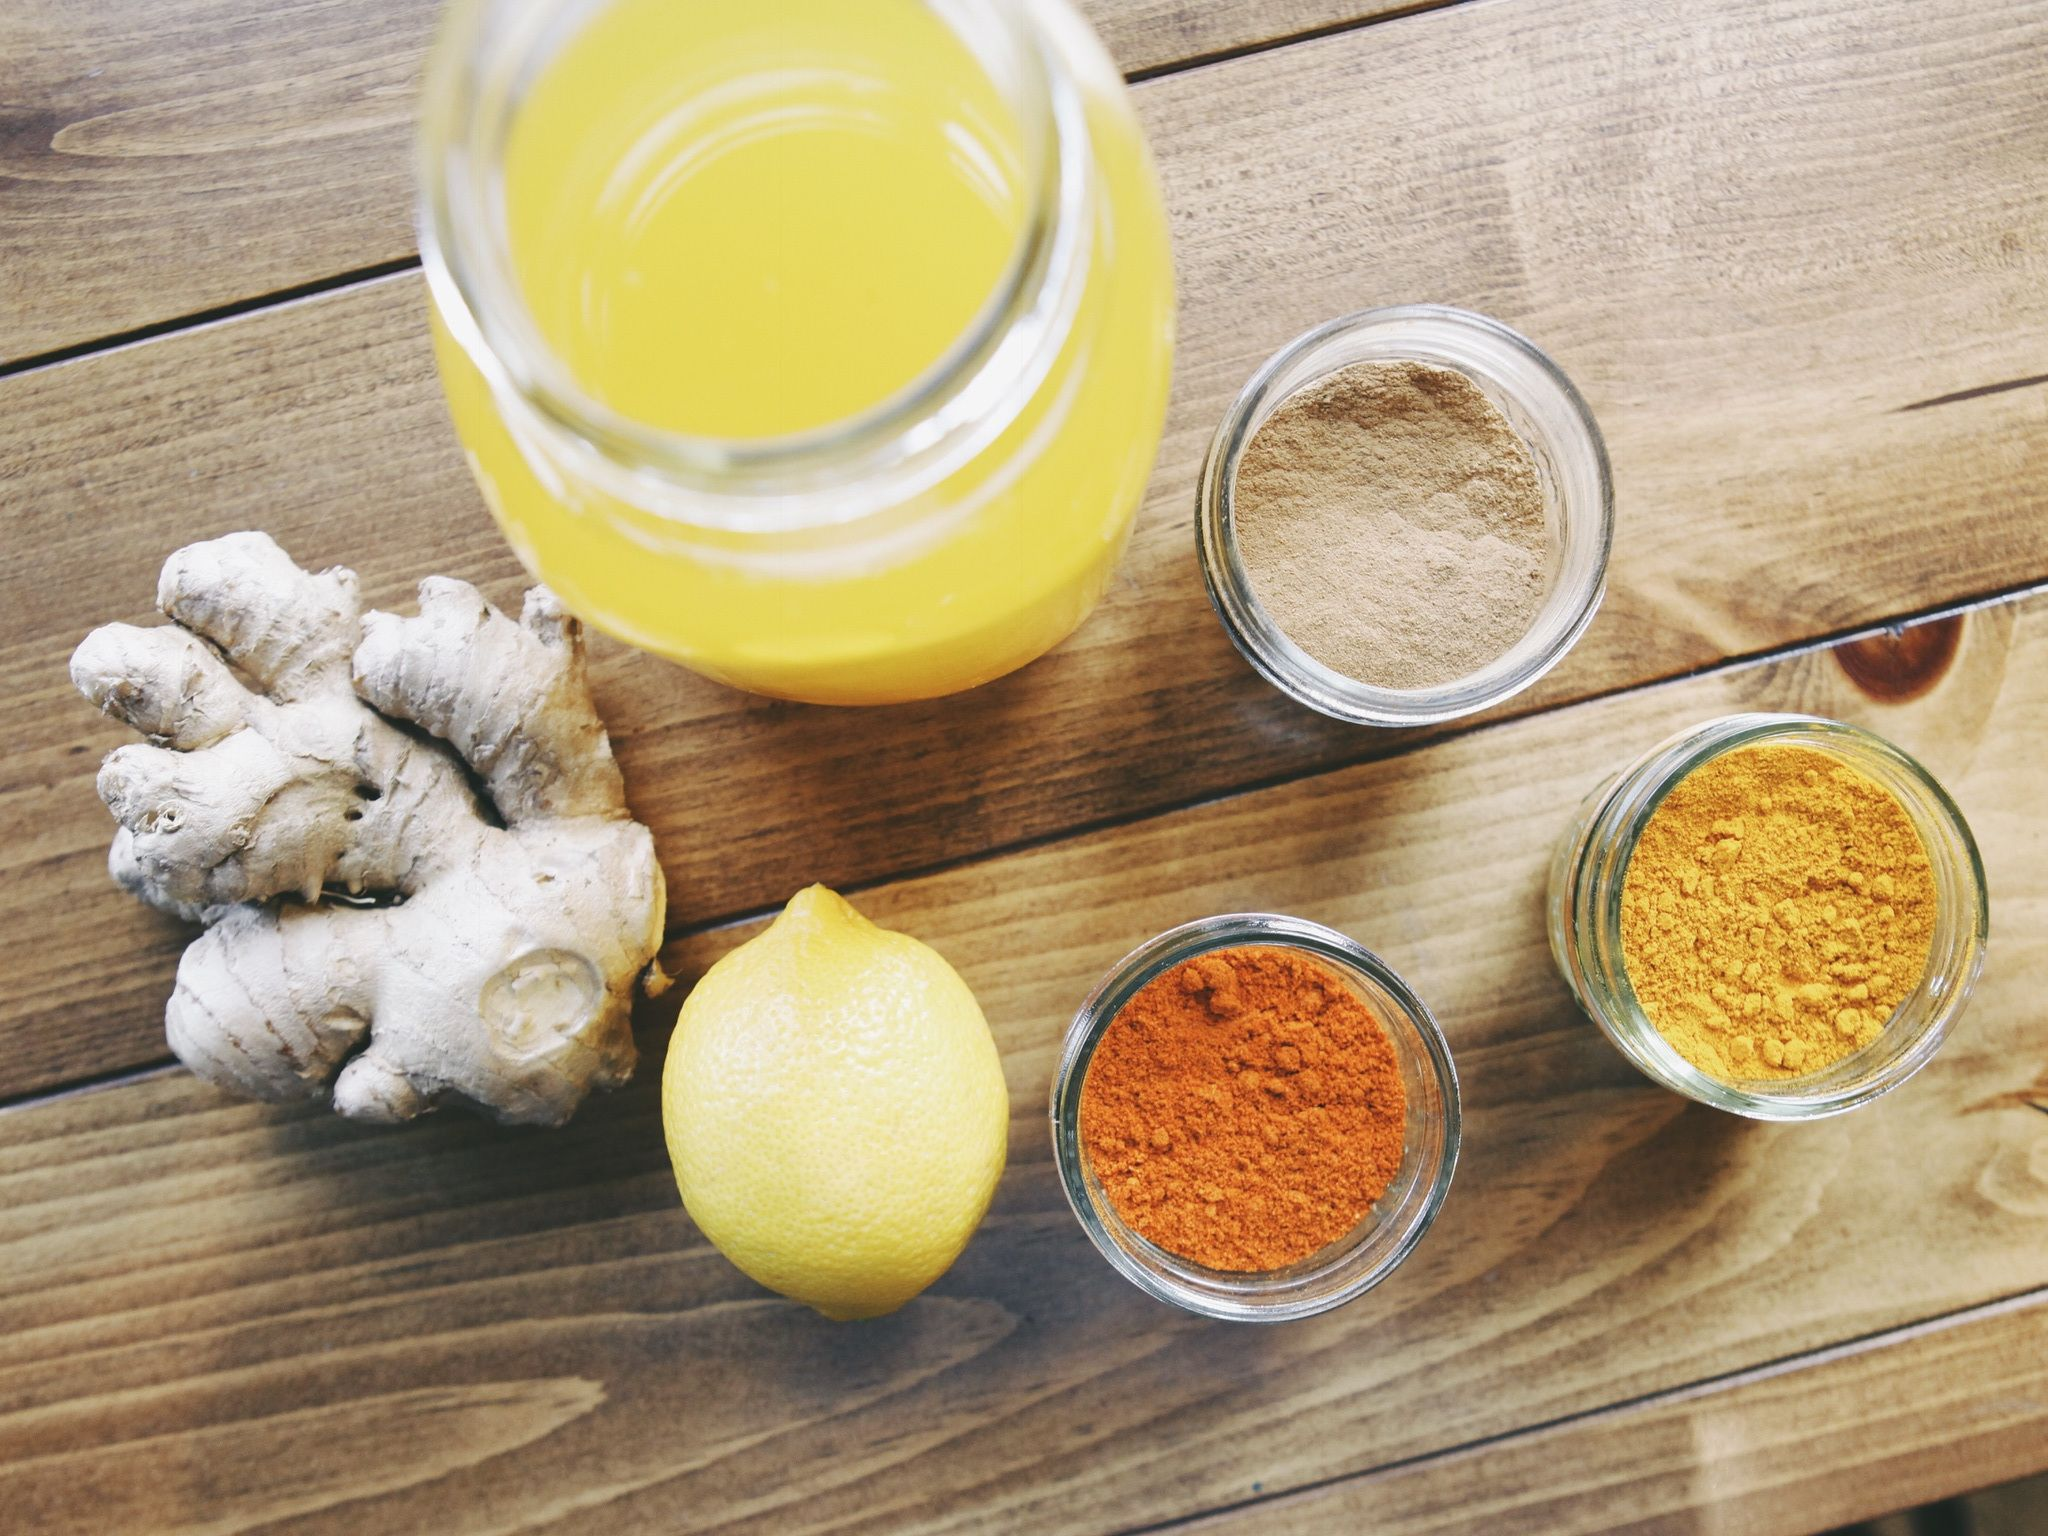 Our in-house nutritionist was in the kitchen whipping up some magic & came up with an amazing Turmeric Tea. This guy is anti-inflammatory, great for digestion, aids in a healthy metabolism and is an excellent immune booster. Basically it's a reset button for your system.